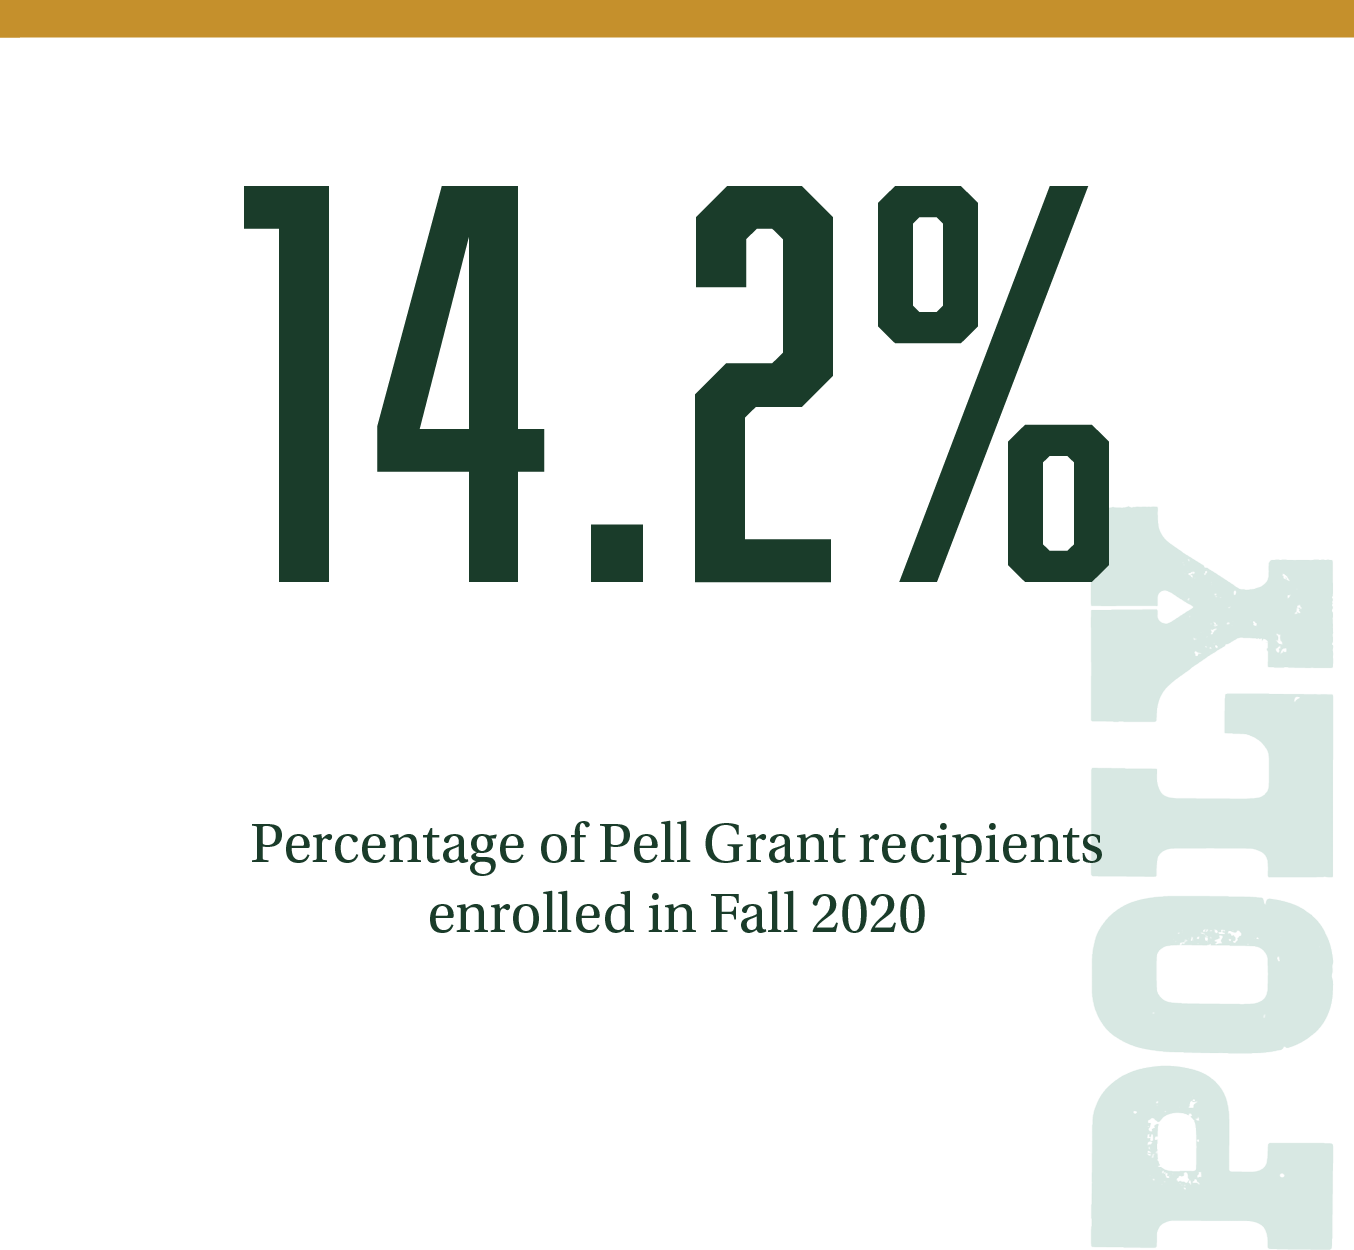 14.2% Percentage of Pell Grant recipients enrolled in Fall 2020.